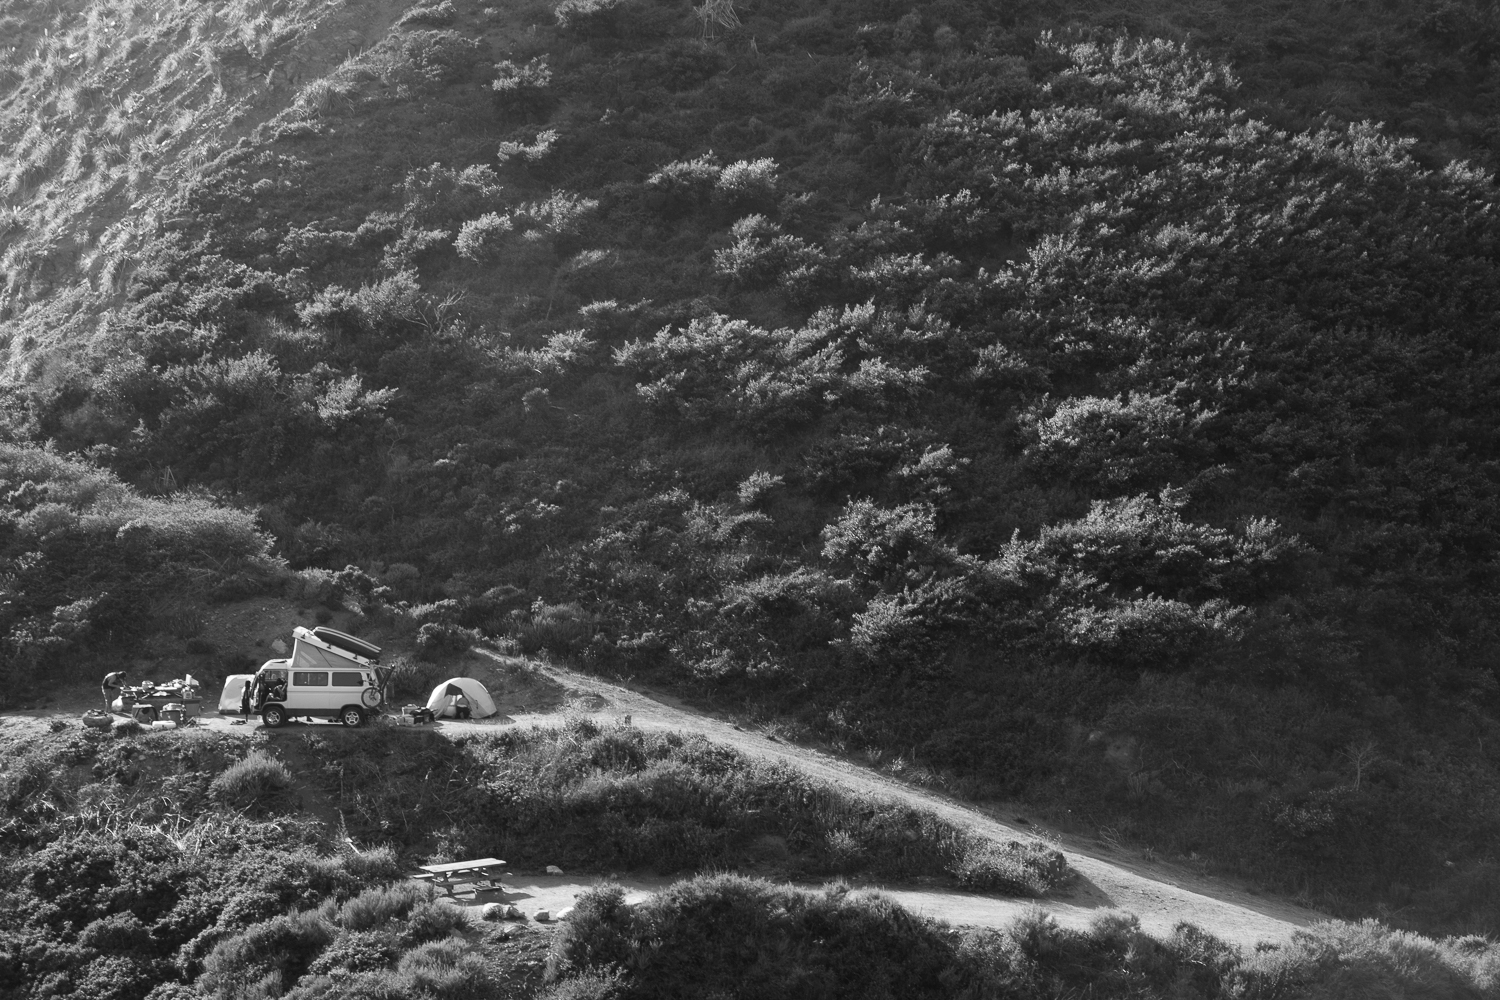 Camped at Lime Kiln camp in Big Sur